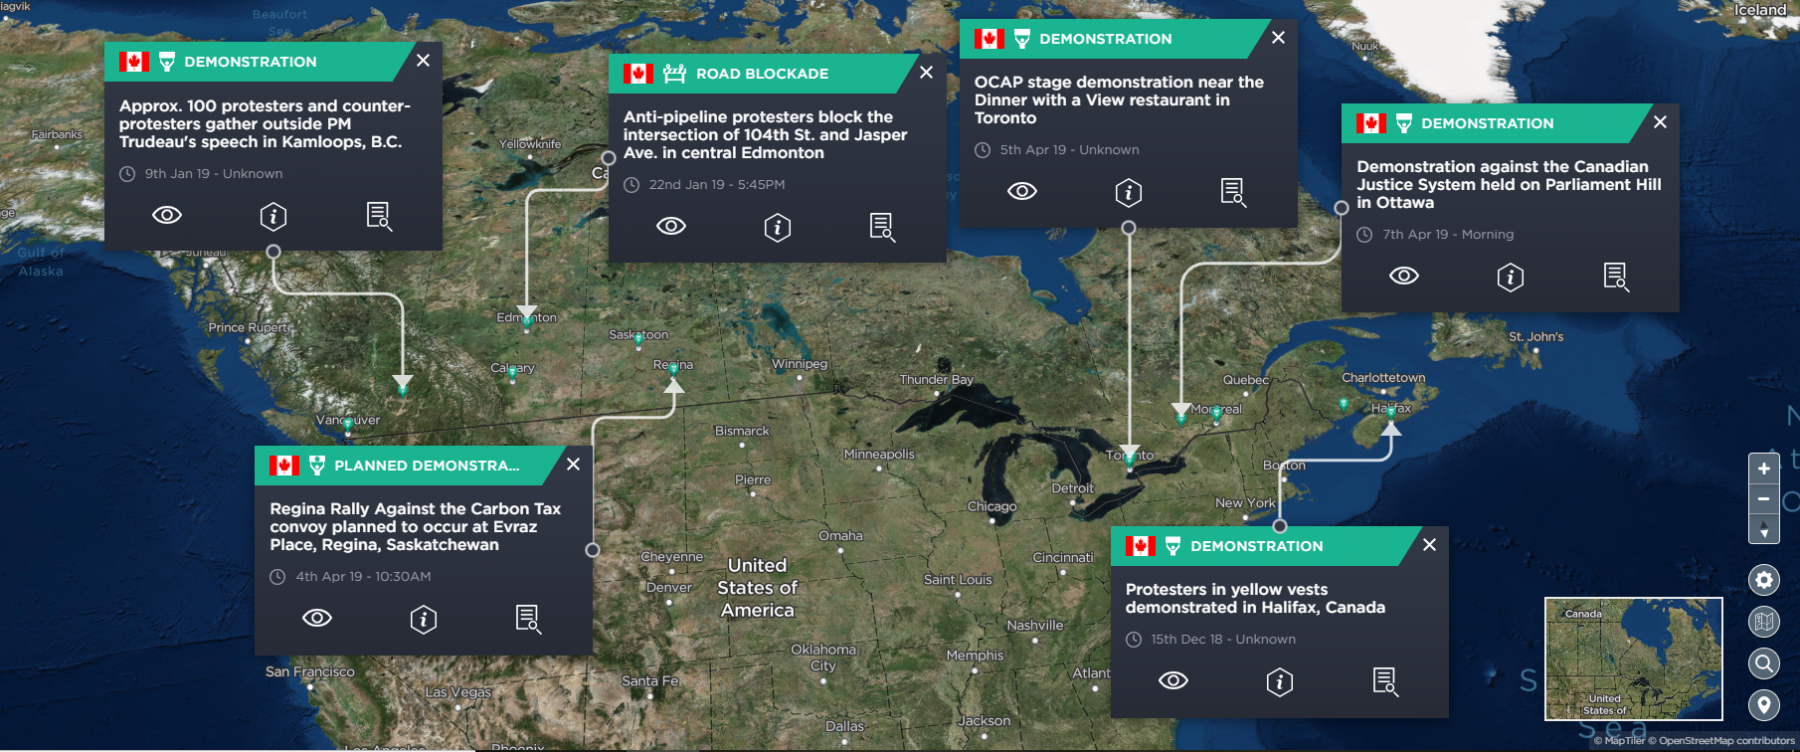 A map showing the various yellow vest protests and pipeline demonstration in Canada throughout 2019